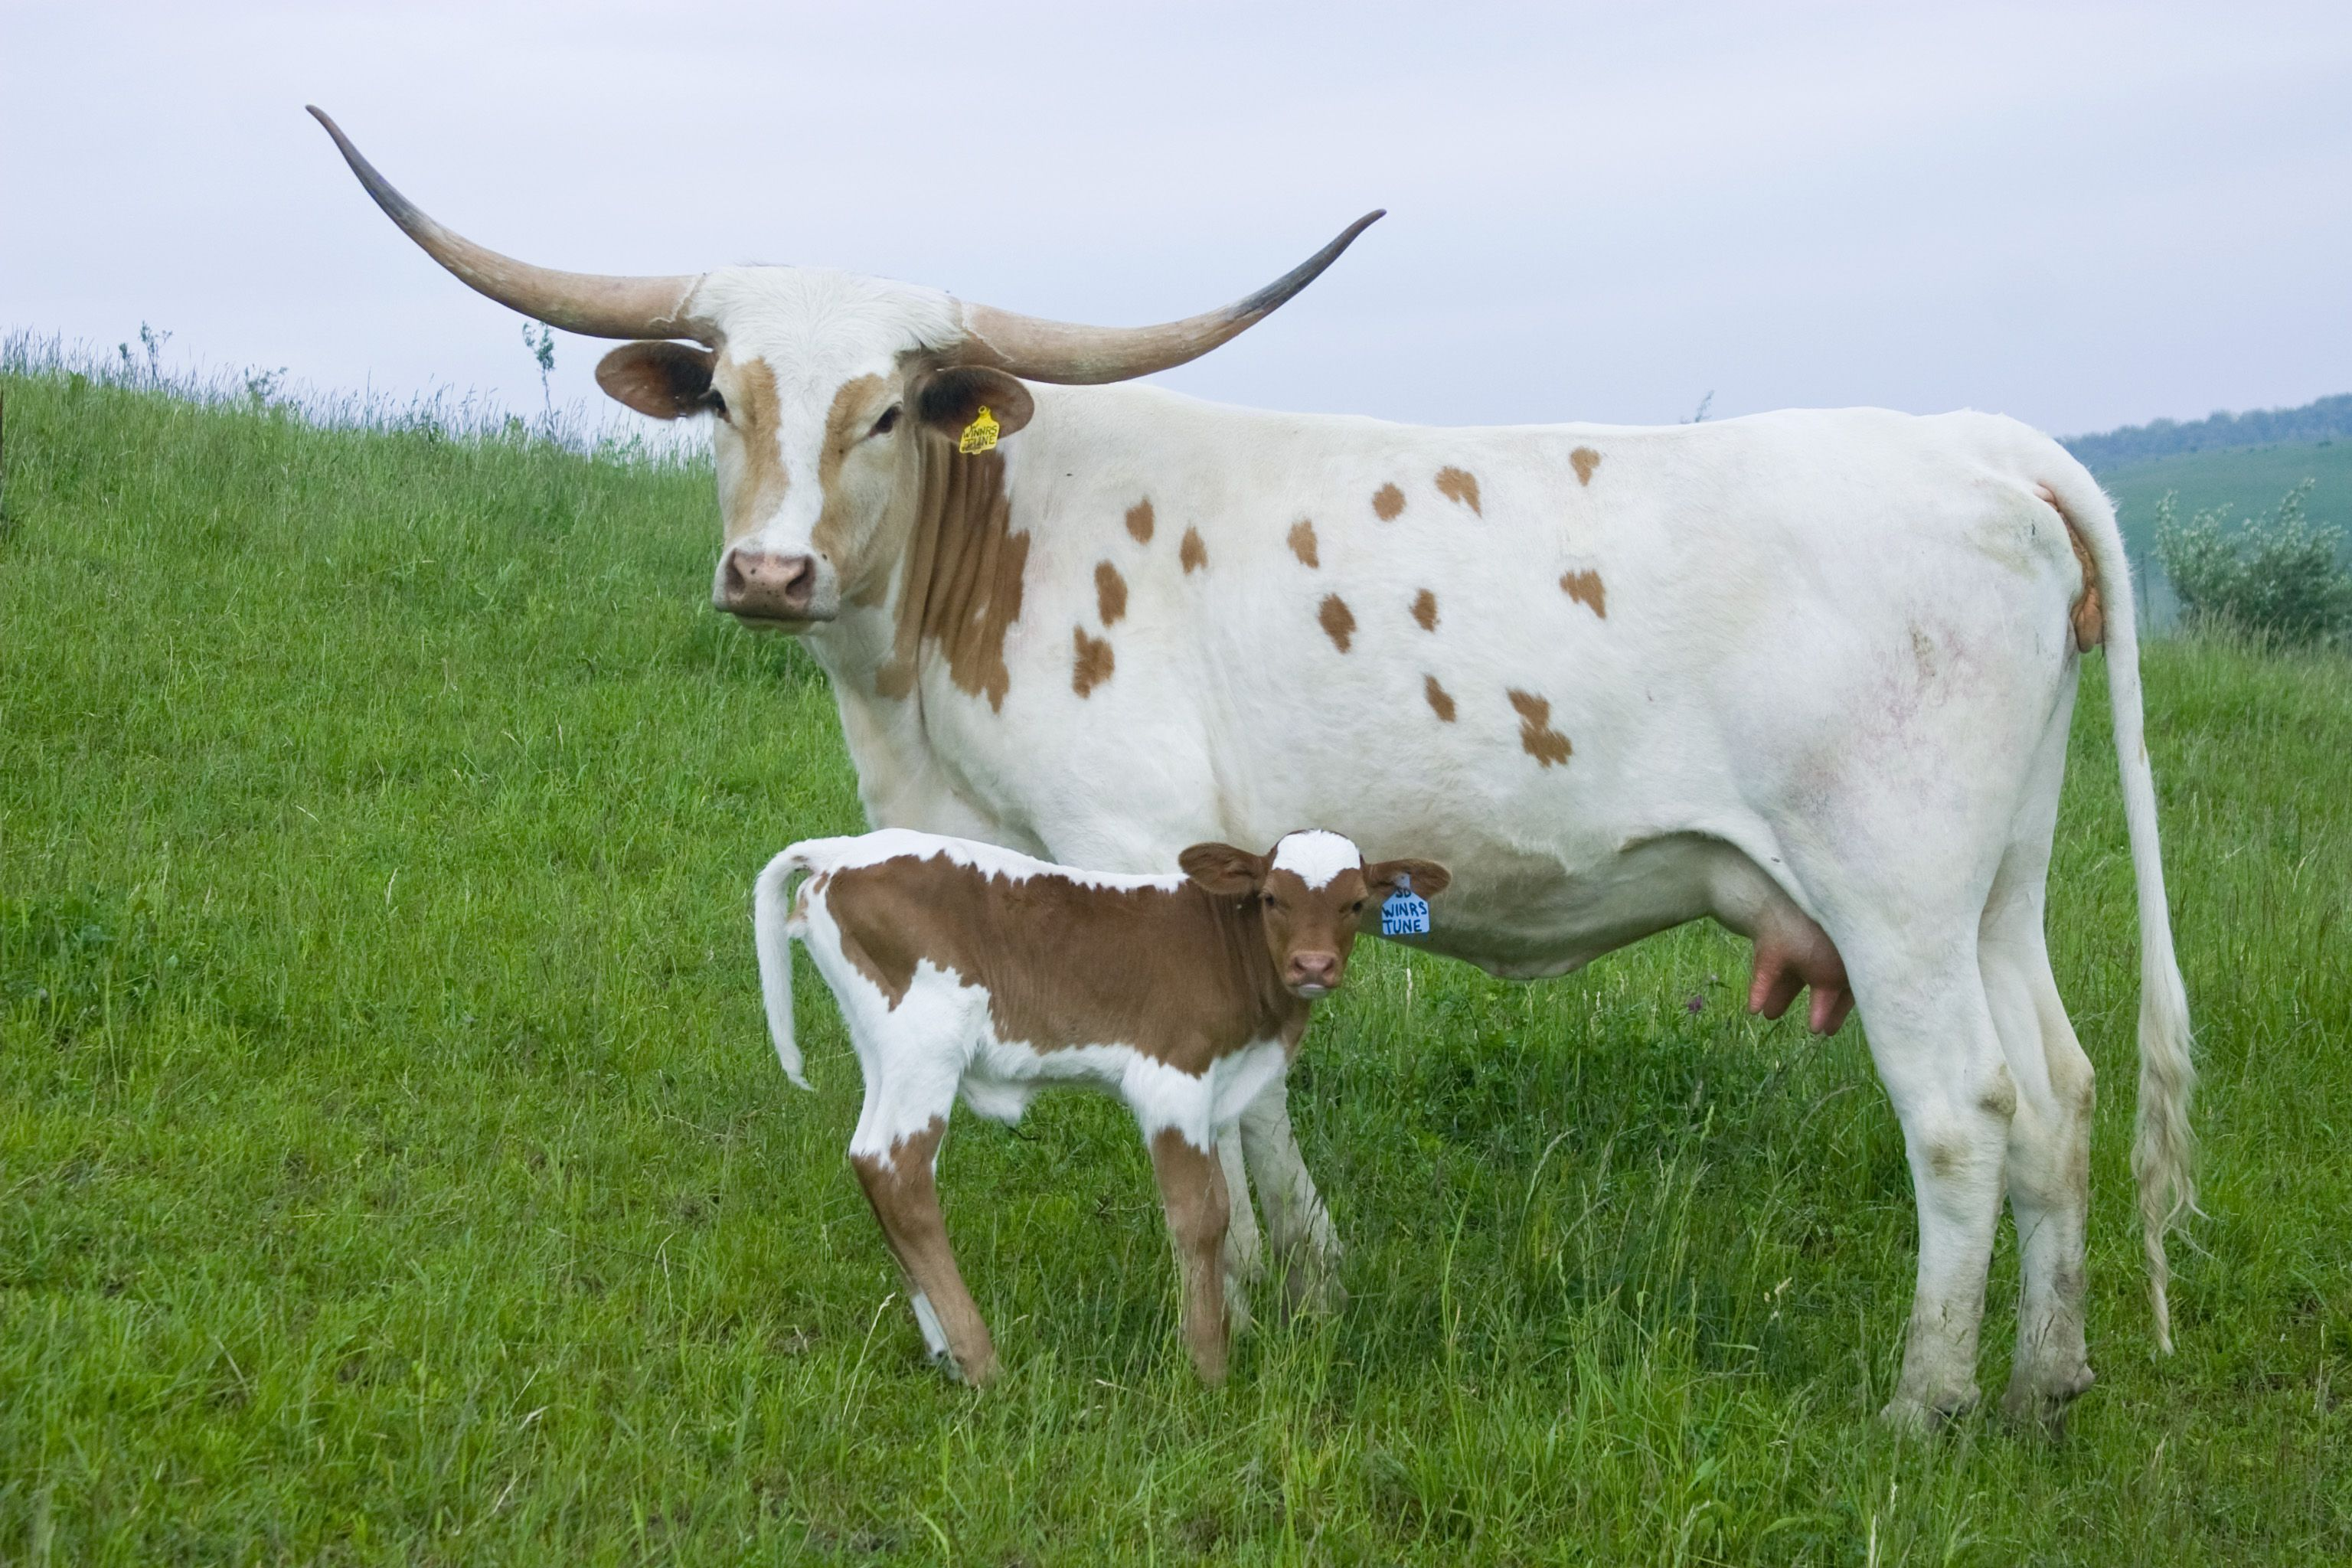 Cow with calf images